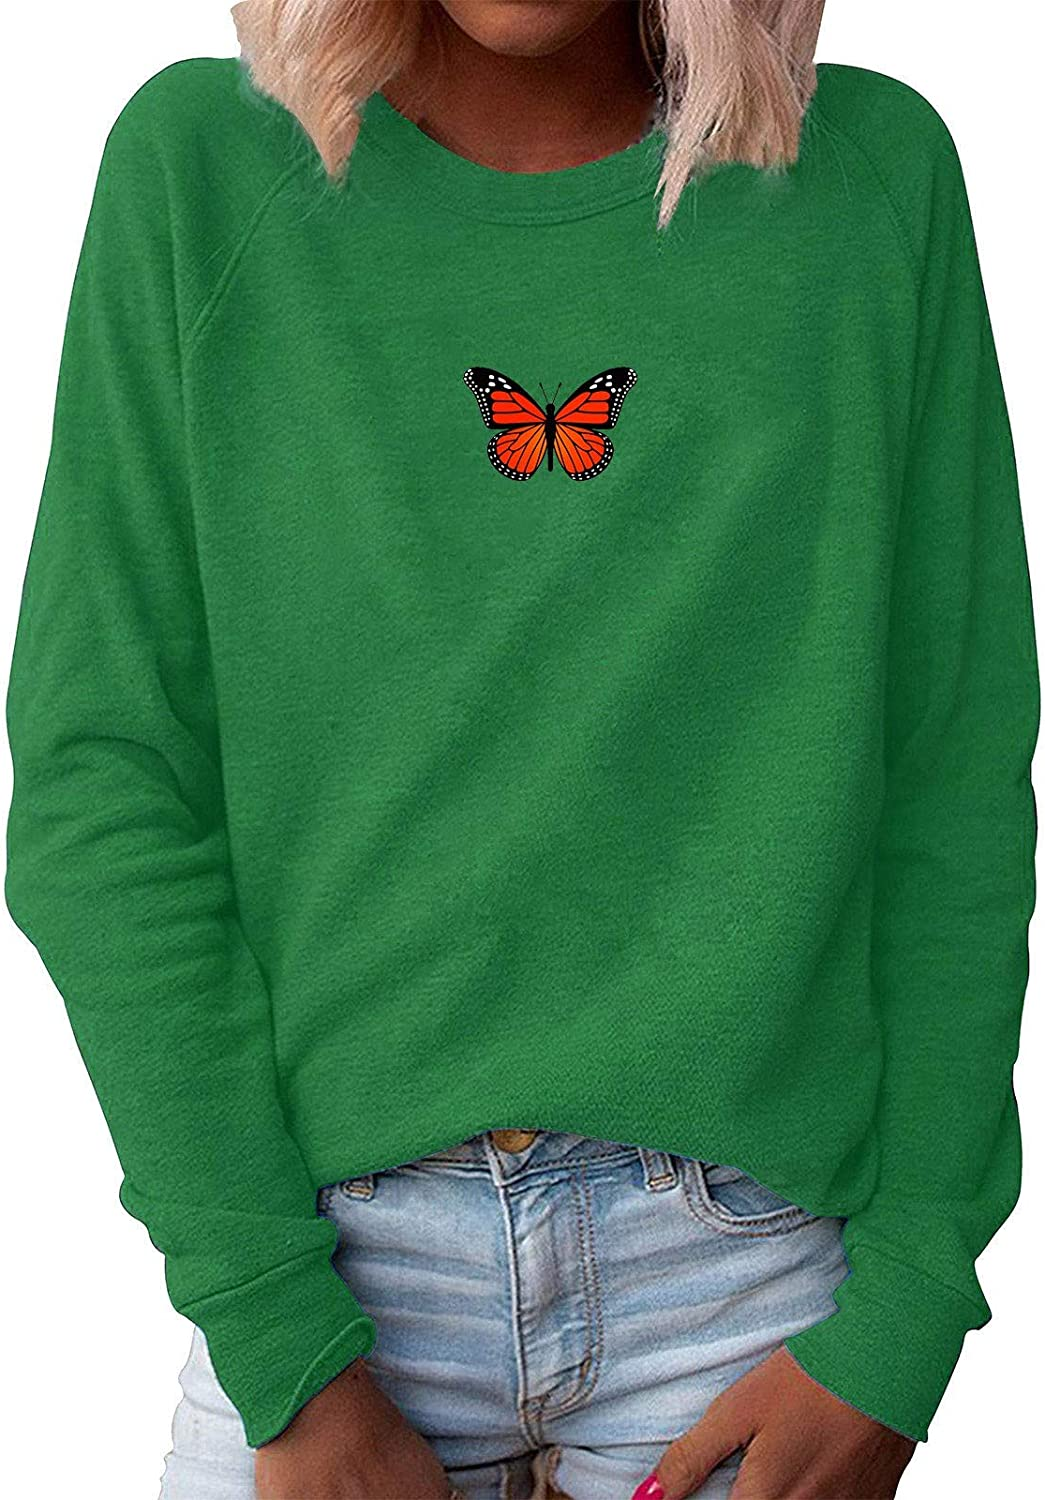 Forwelly Women's Butterfly Print T Shirt Plus Size O Neck Loose Sweatshirt Pullover Long Sleeve Casual Blouse Top